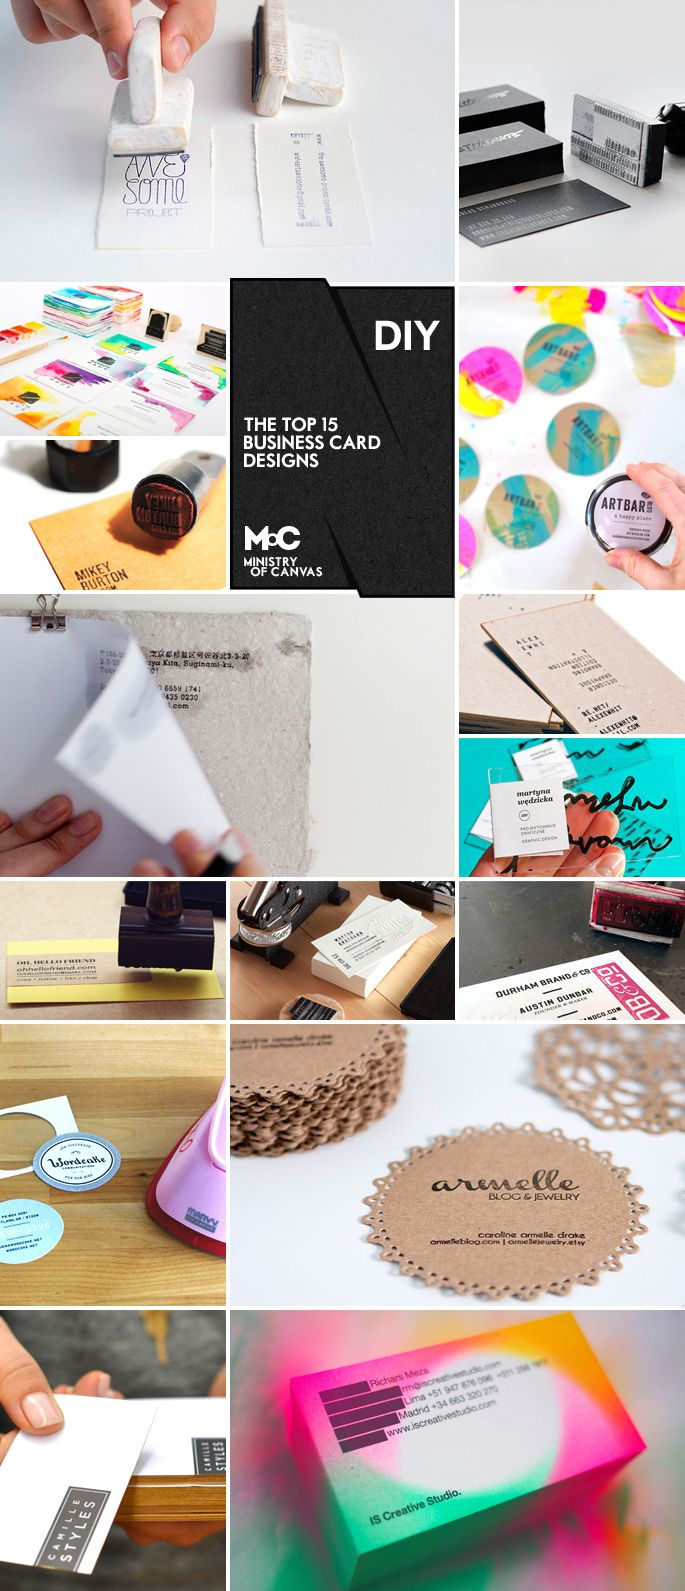 6 super easy ways to create handmade diy business cards pinterest the top 16 diy business cards 6 super easy ways to create handmade diy business cards reheart